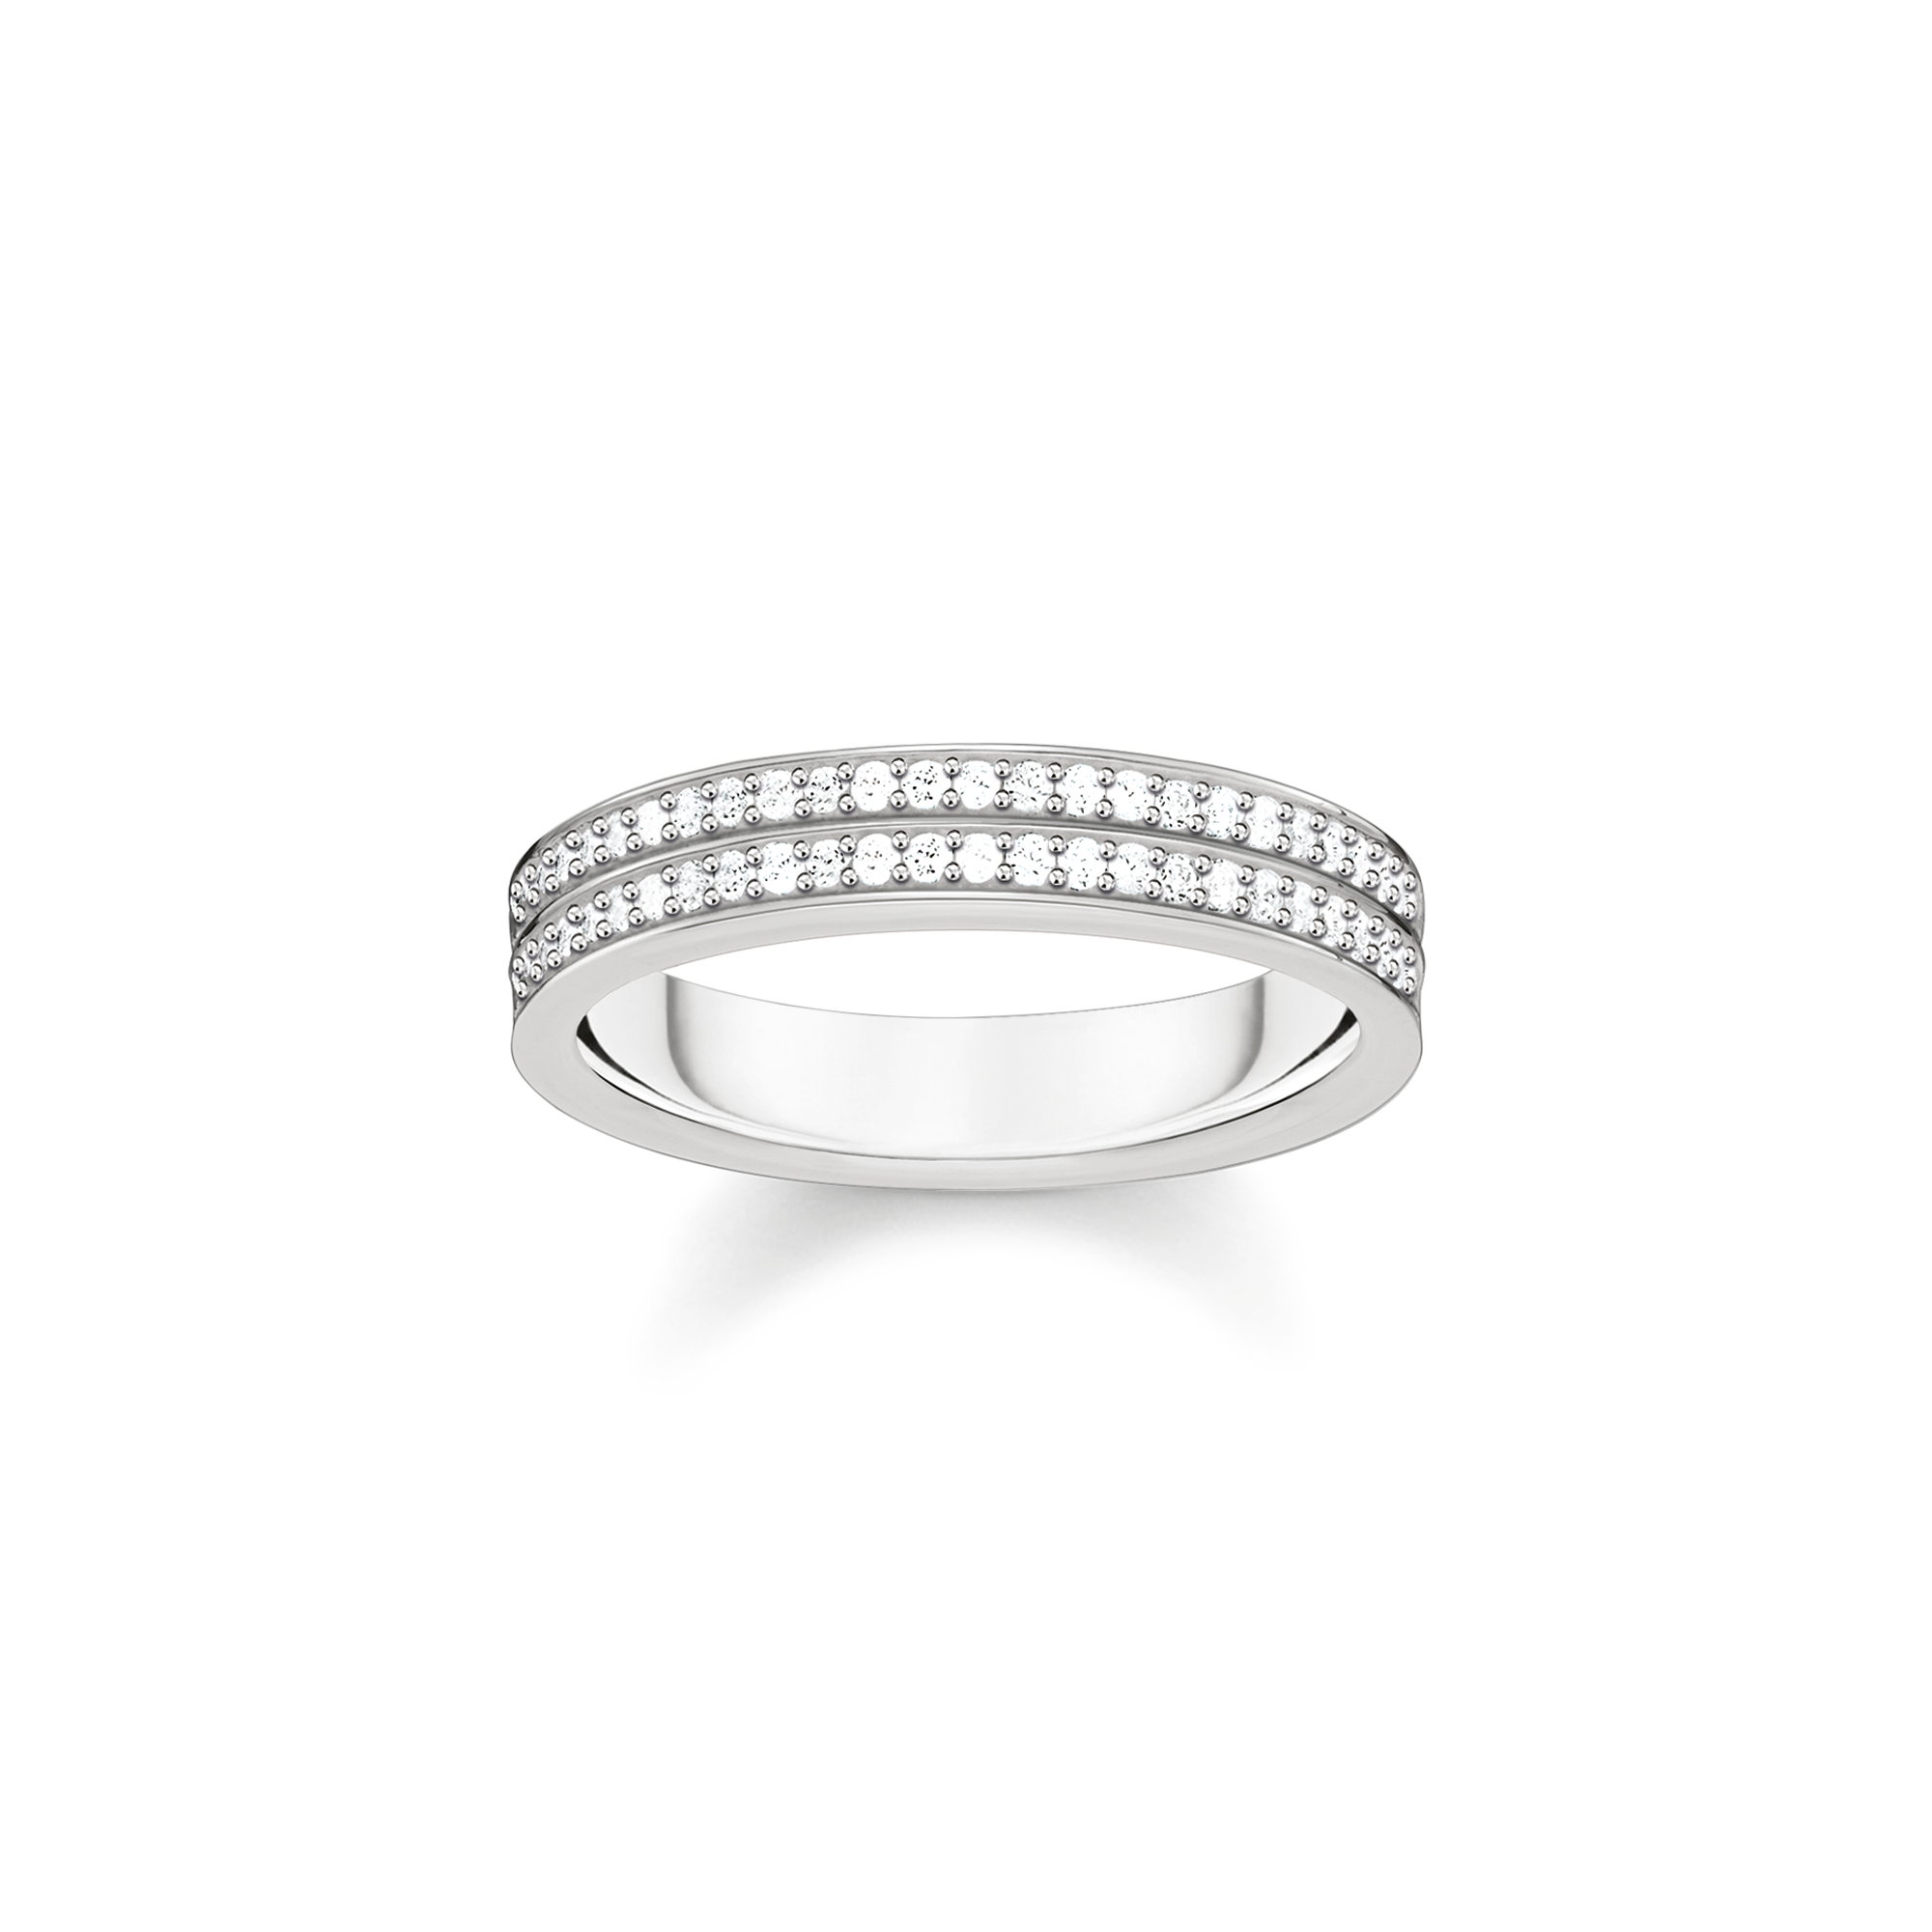 Thomas Sabo - personalised ring - 1